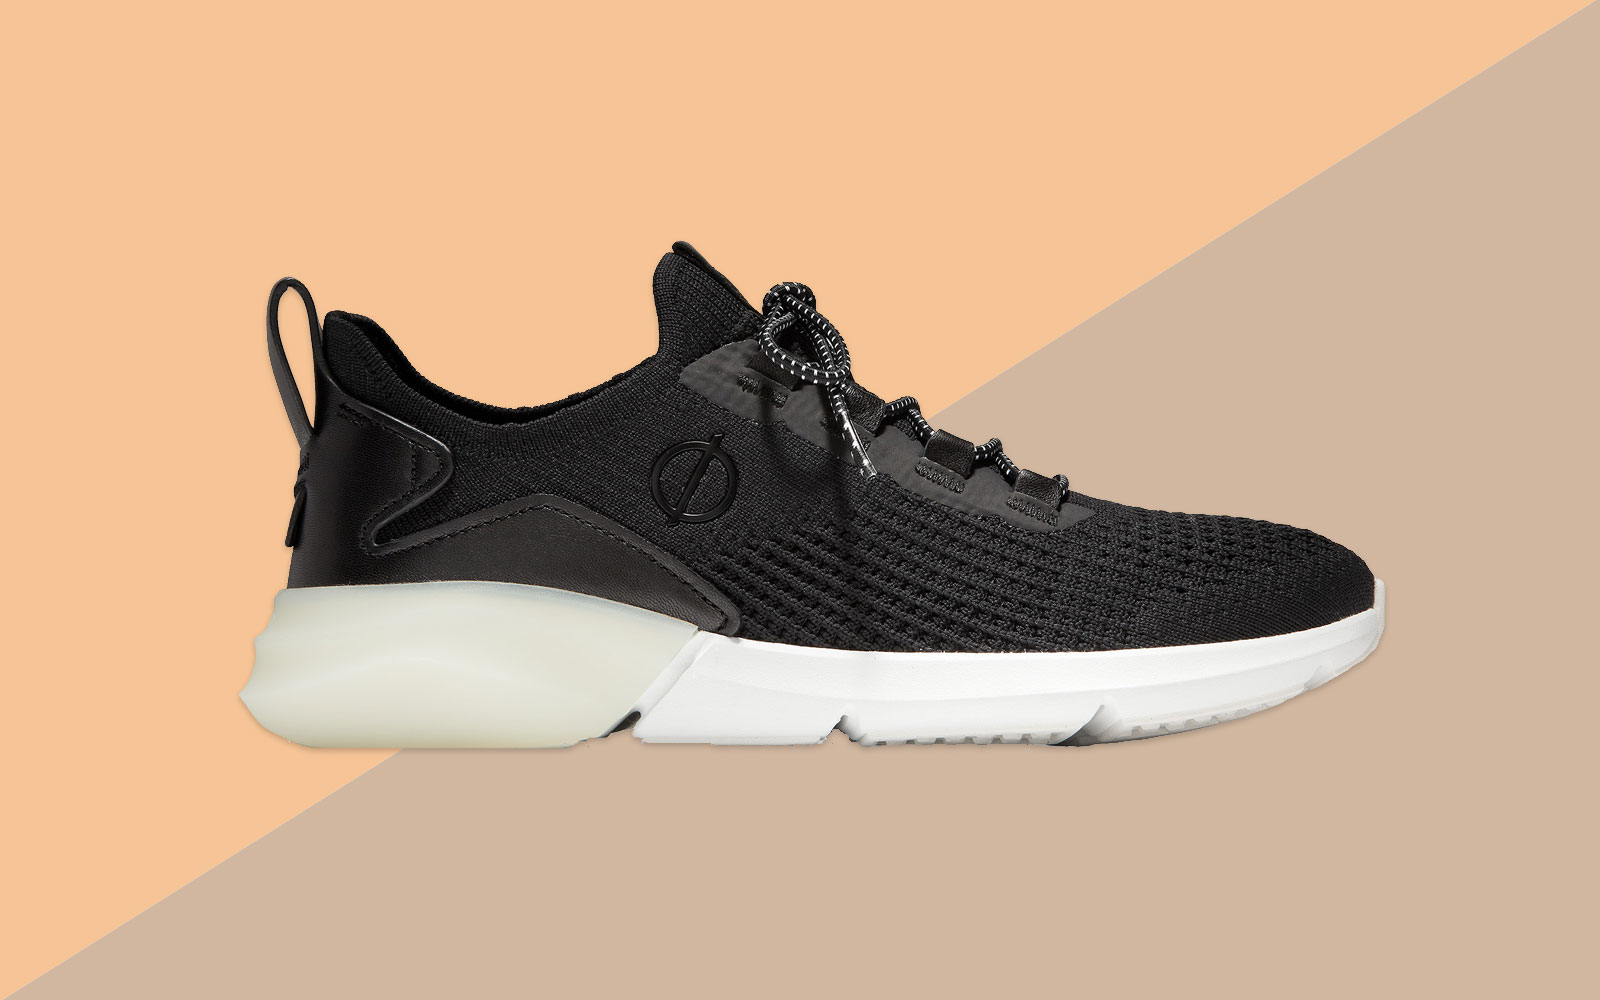 Women's Black and White Running Shoes